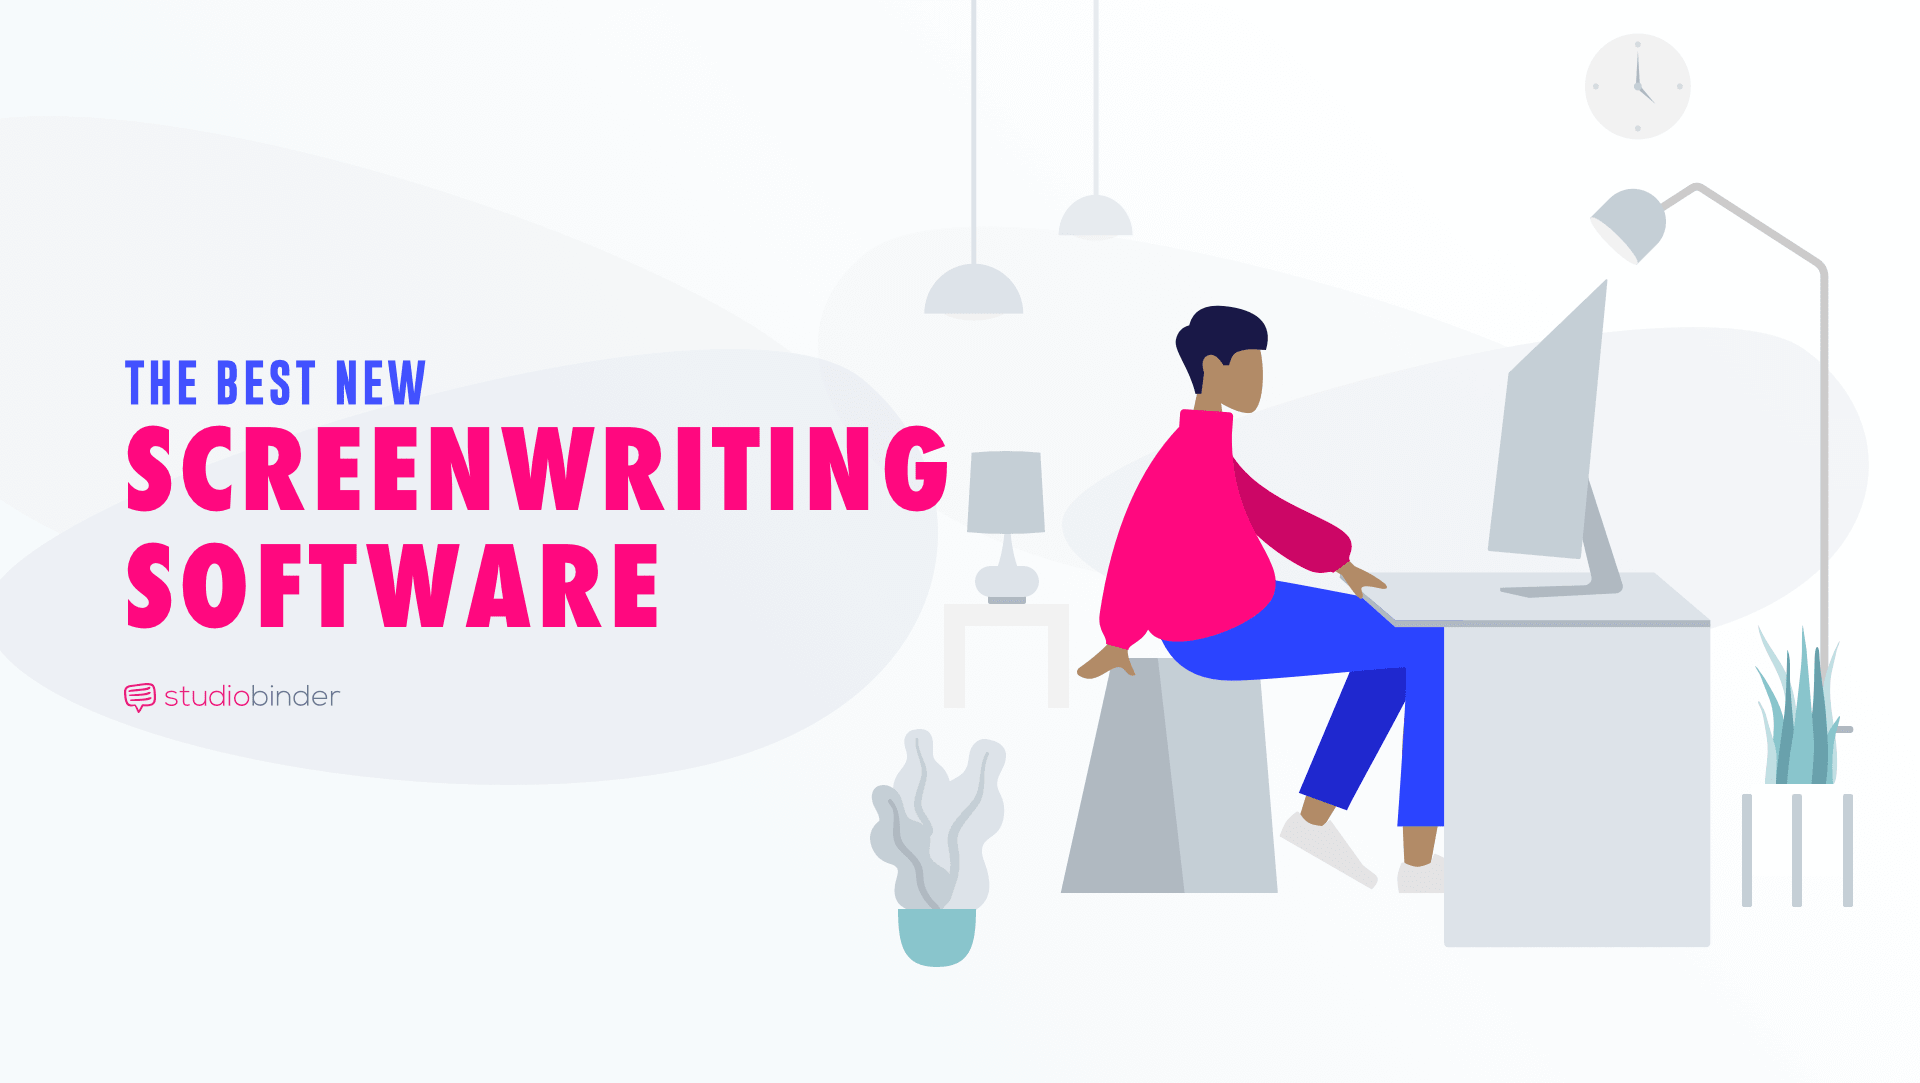 9 Best Screenwriting Software Tools to Use in 2019